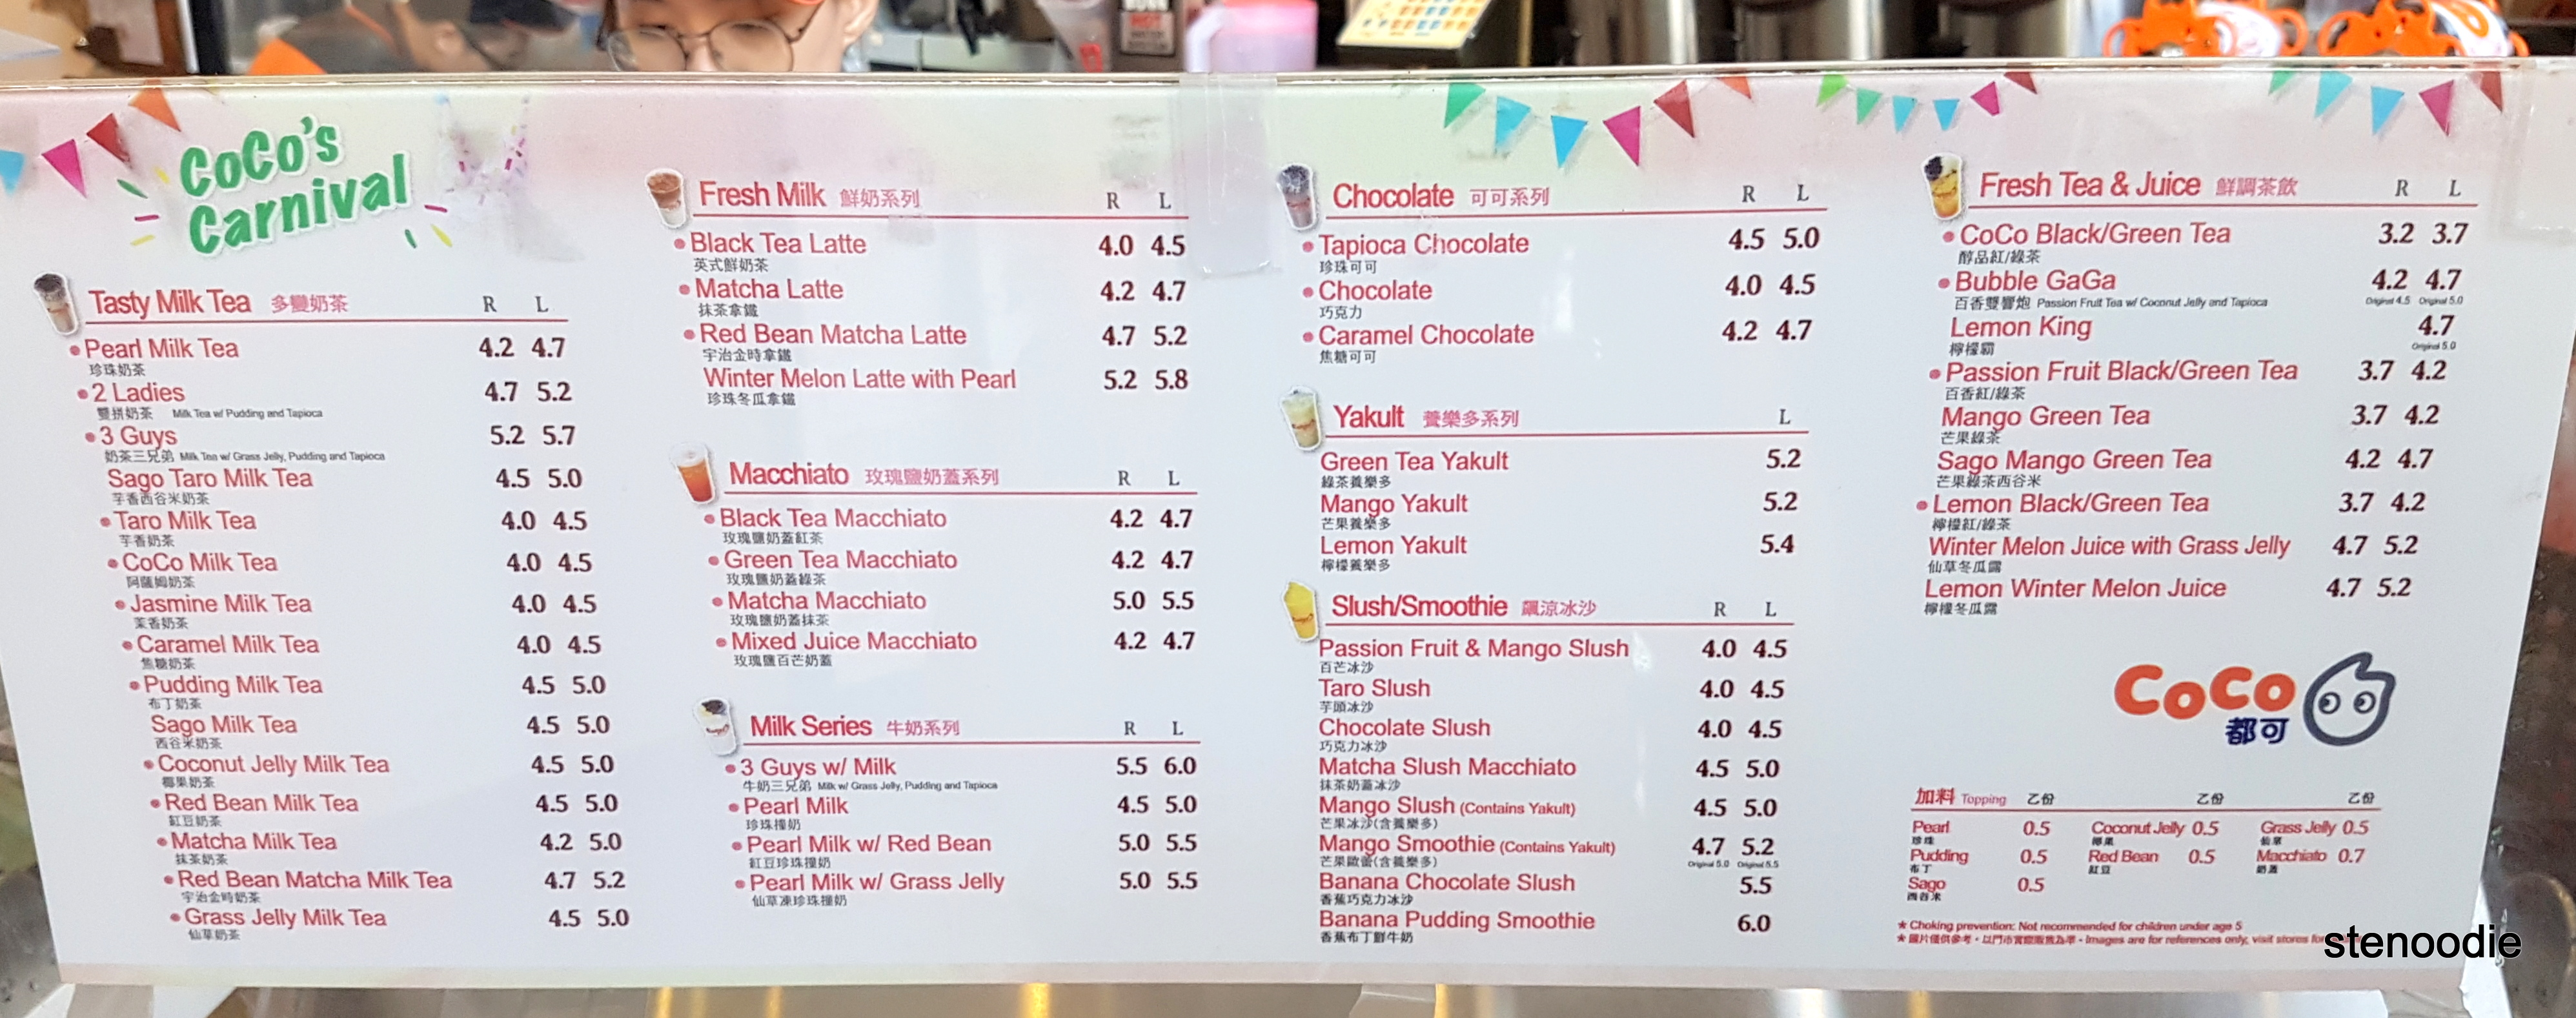 Coco Tea & Juice drink menu and prices